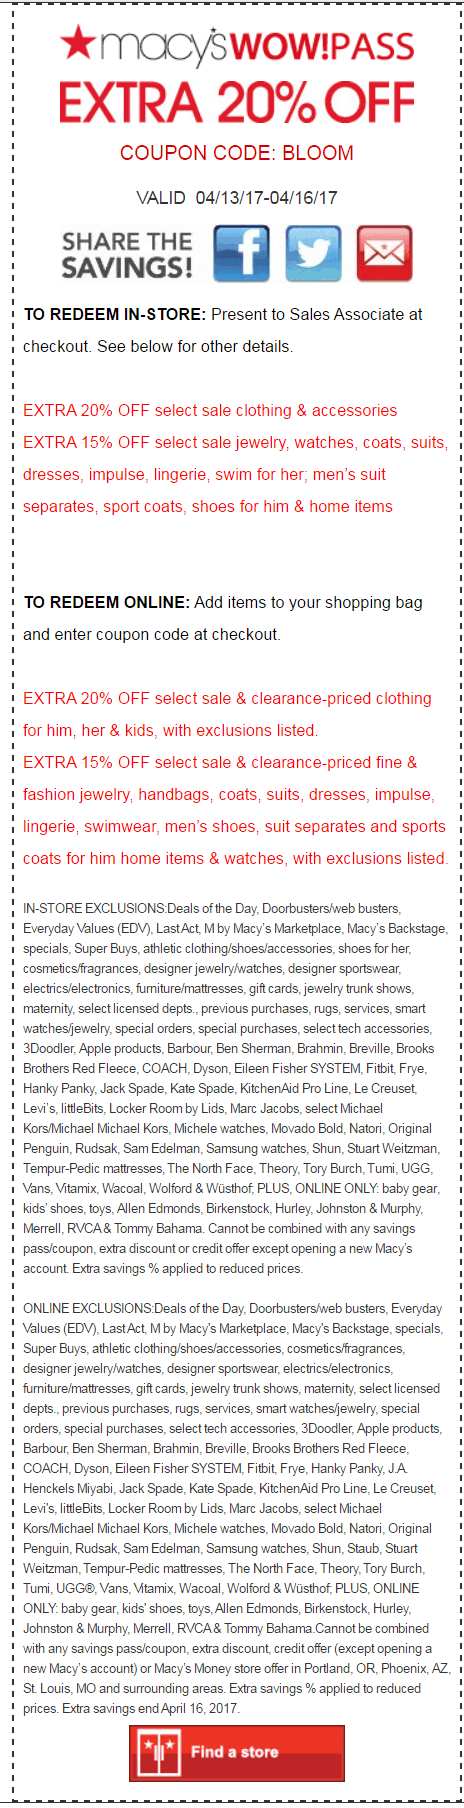 macys printable coupon april 2017 easter